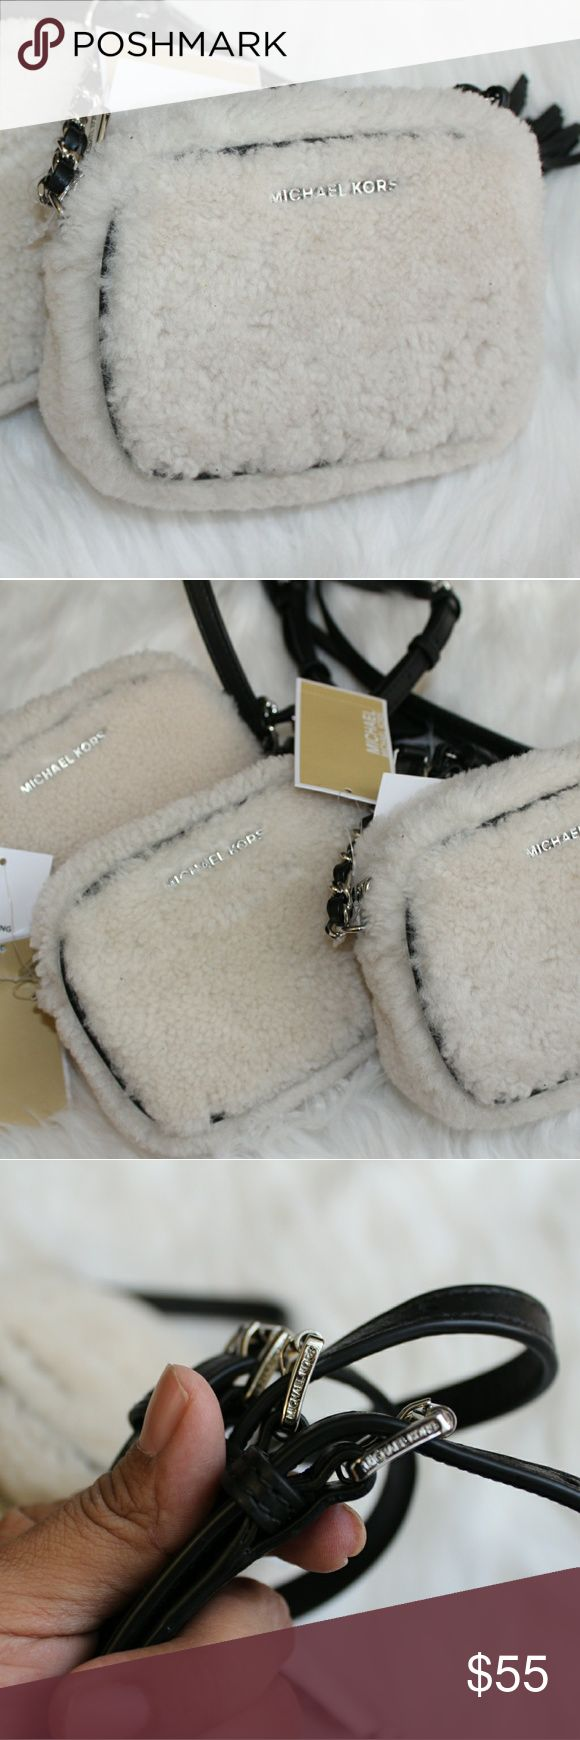 "Michael Kors Jet Set Small Crossbody Fur Bag MICHAEL Michael Kors Jet Set Travel Small Chain Crossbody Fur Bag;  Color- ivory/black  Adjustable crossbody strap  Zip closure; lined Interior slip pocket  Genuine lamb fur; dyed; fur imported from Vietnam Leather/lamb fur  6.5""L x 2""W x 5""H;  23.5"" strap drop   Price is for only one bag, but I am open to offers! MICHAEL Michael Kors Bags Crossbody Bags"